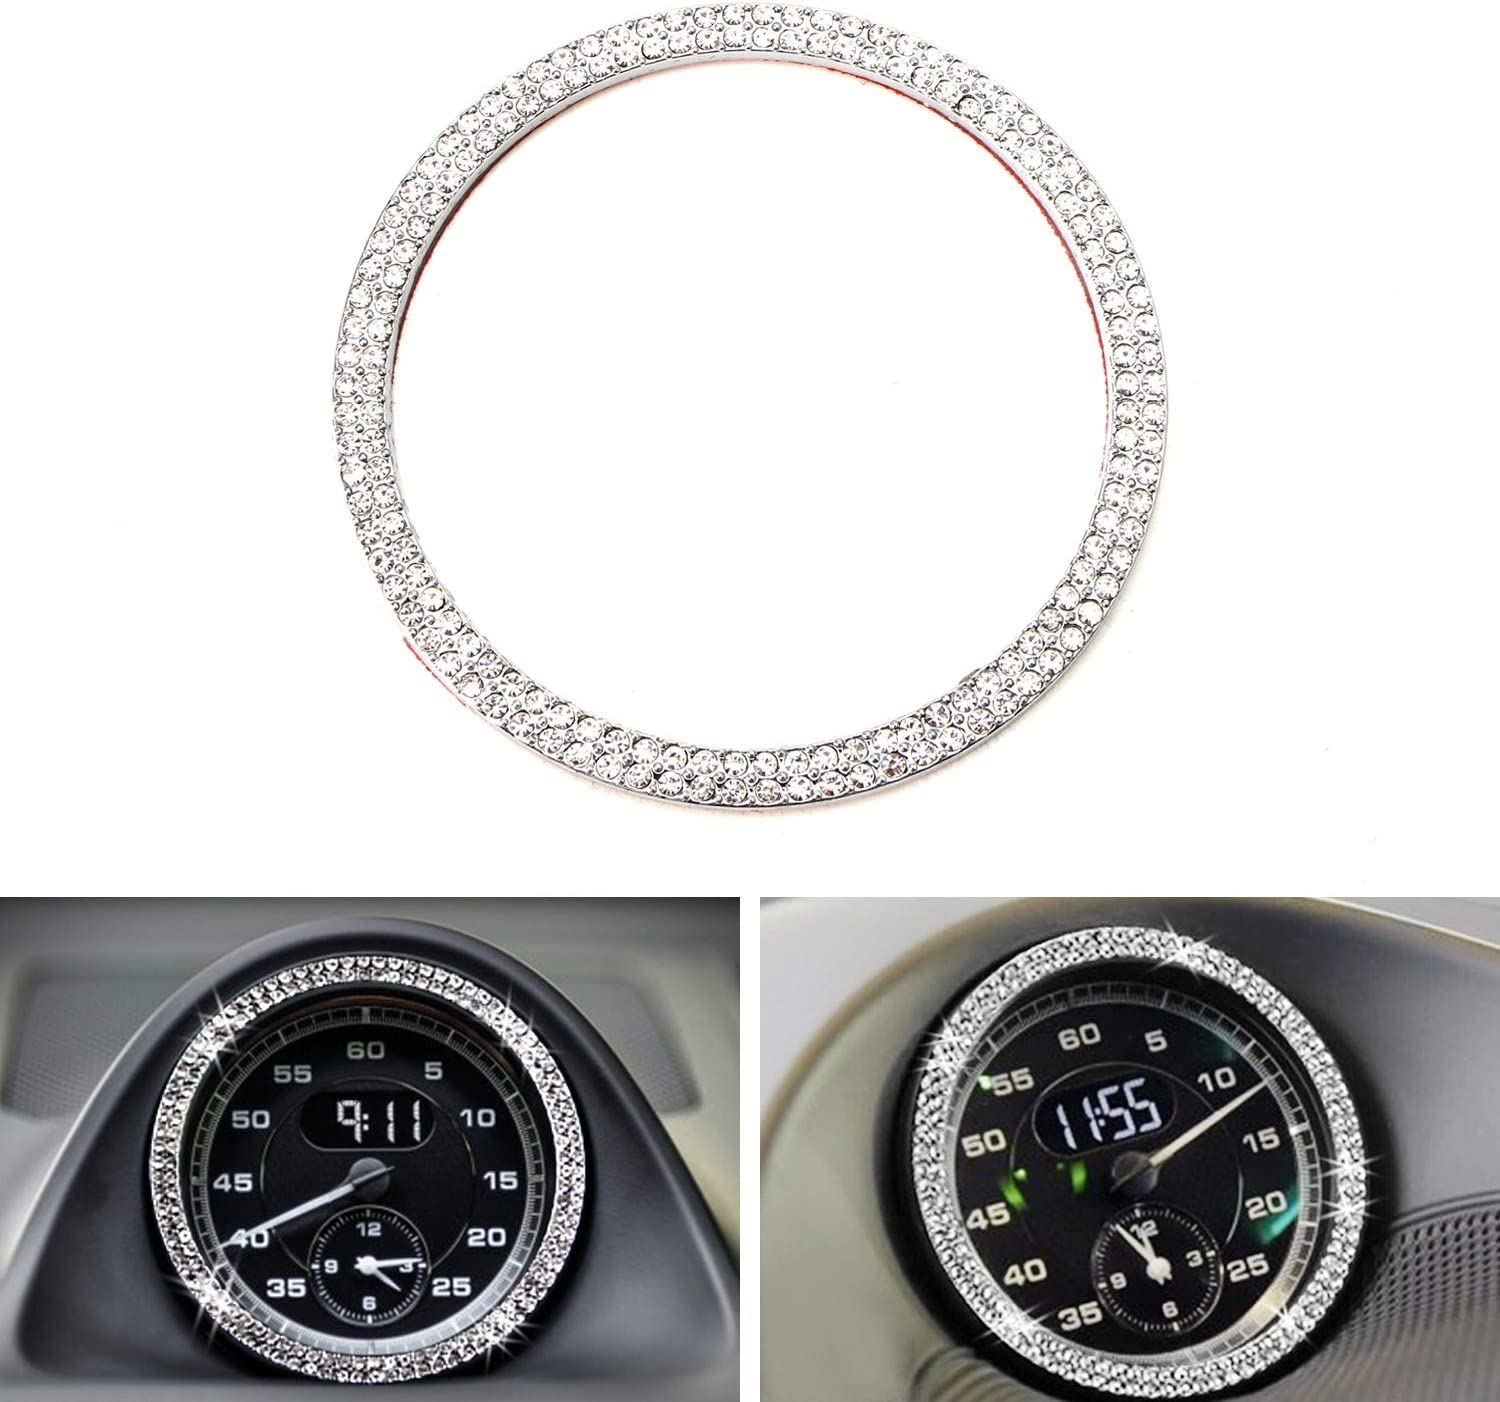 iJDMTOY (1) Crystal Silver Chrome Interior Dashboard Clock Surrounding Decoration Ring Trim Compatible With Porsche 911 Cayenne Boxster Macan Panamera, etc